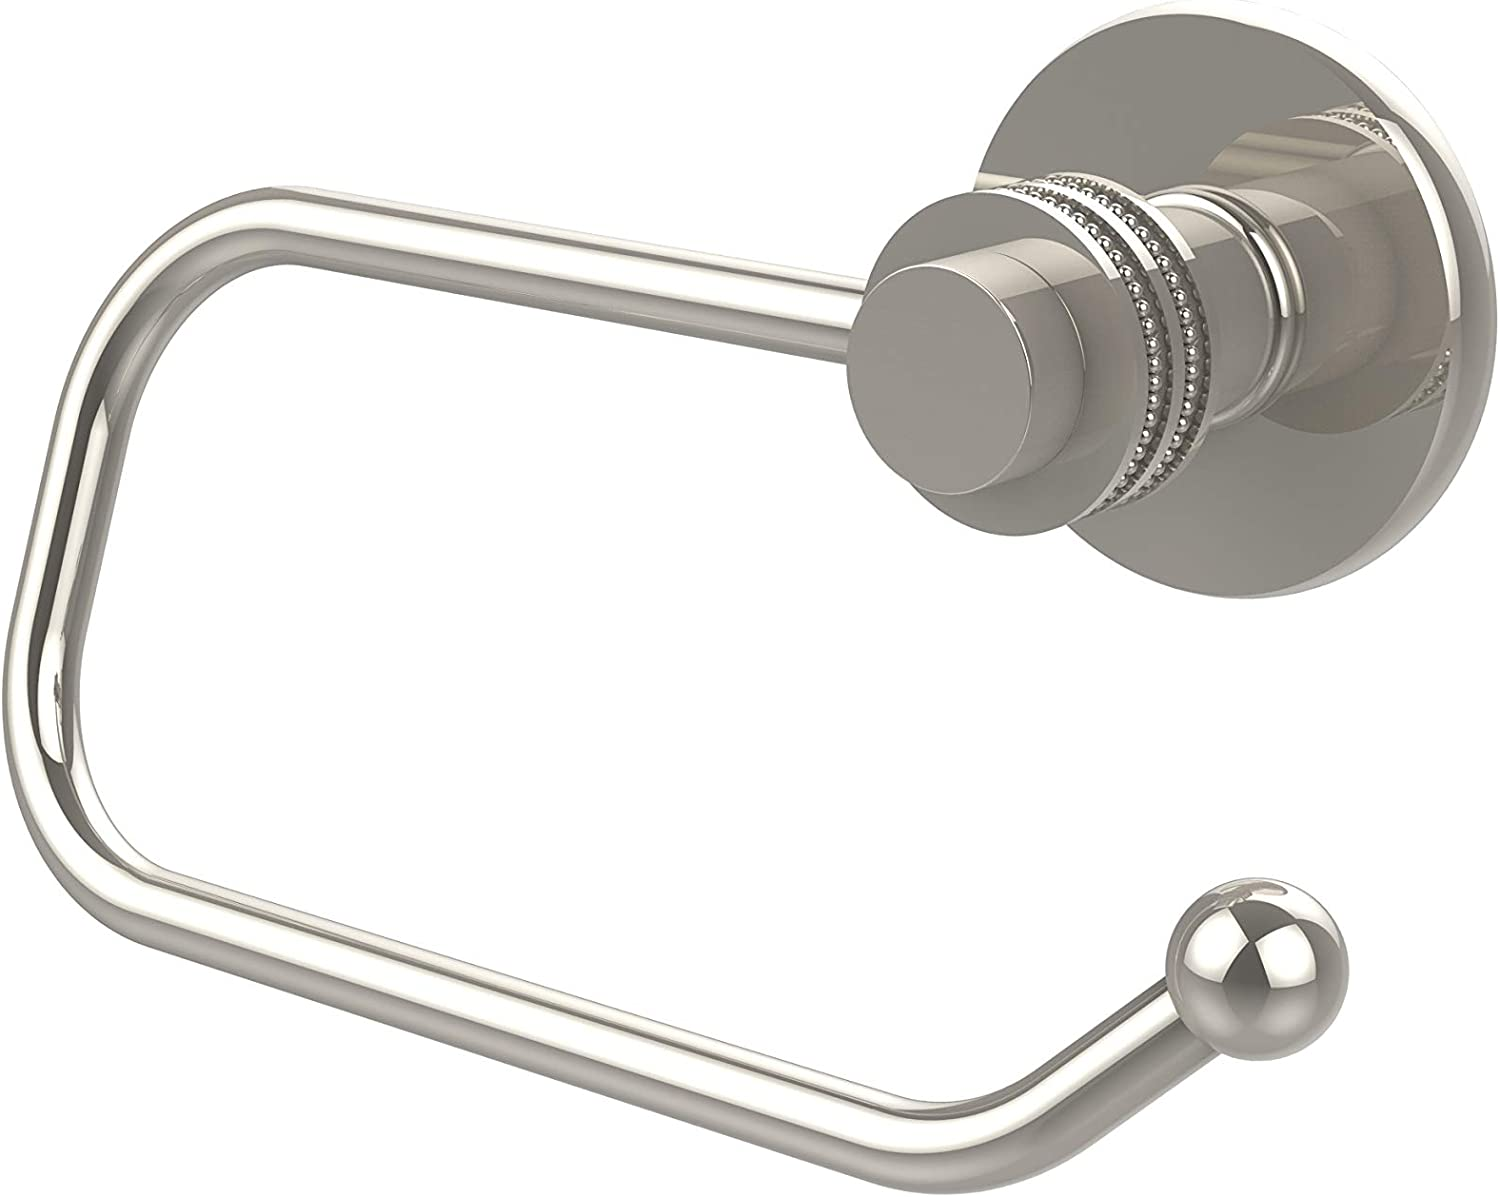 Polished Chrome Allied Brass 924ED-PC Mercury Collection Euro Style Tissue Dotted Accents Toilet Paper Holder